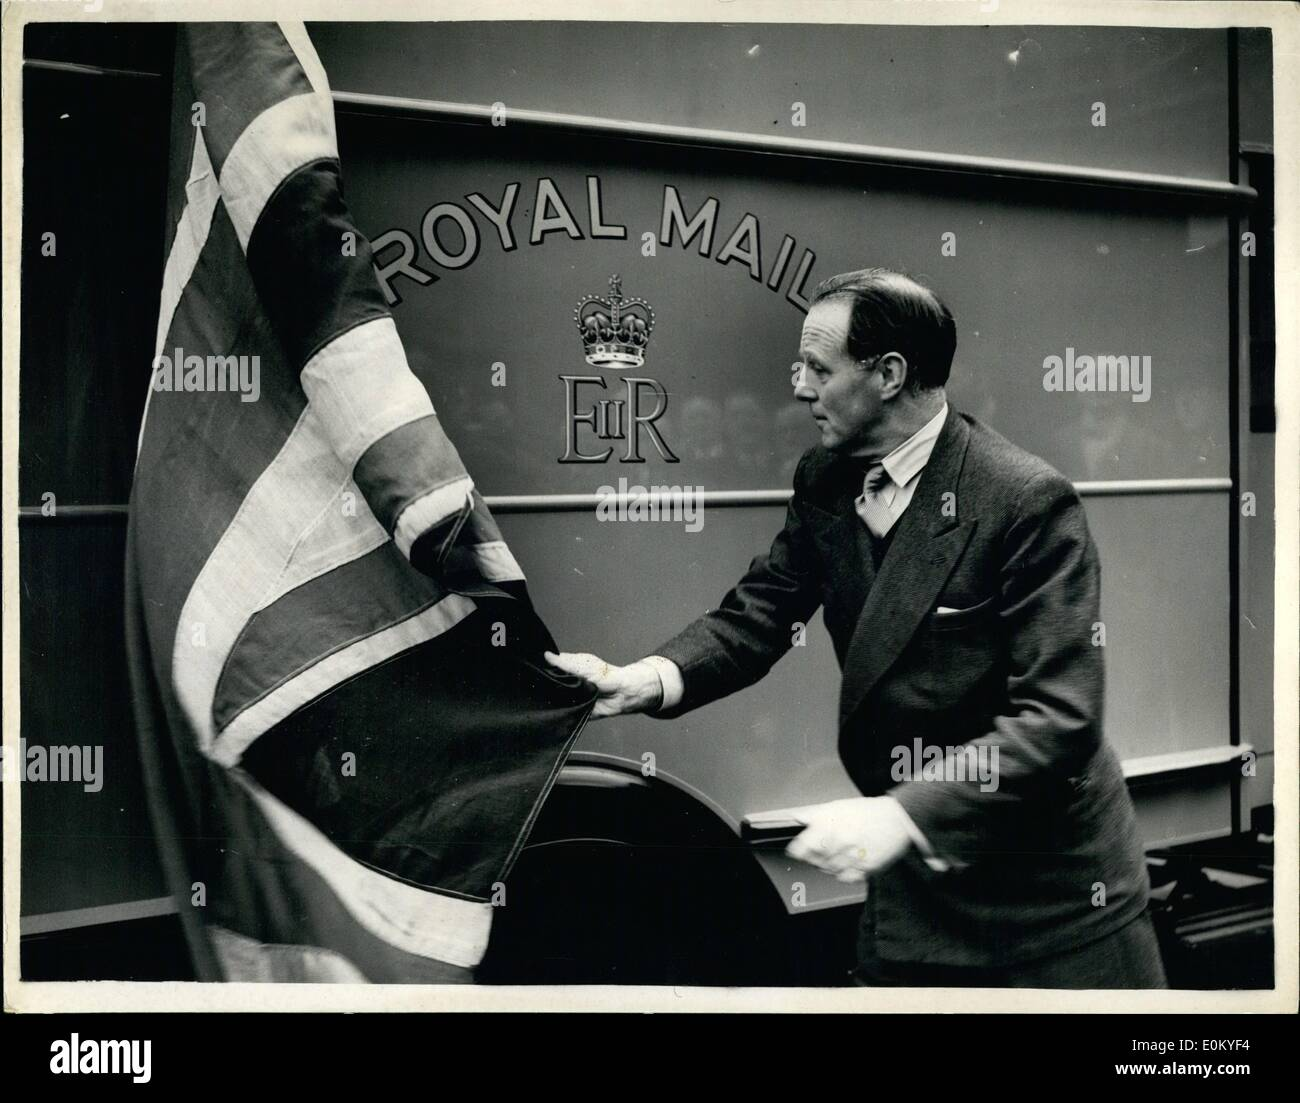 Nov. 11, 1952 - New Royal Cypher On Postal Van Unveiled By Postmaster General: The Postmaster General, Earl De La Warr, this morning unveiled the first postal van to bear the new Royal Cypher. There are about 2,200 motor mail vans in the London Area - and approximately 12,000 on the roads of the United Kingdom. In time all these vans will carry the new Cypher of Her Majesty. Photo shows Earl De La Warr seen unveiling the new Royal Cypher - in King Edward Building Yard today. - Stock Image